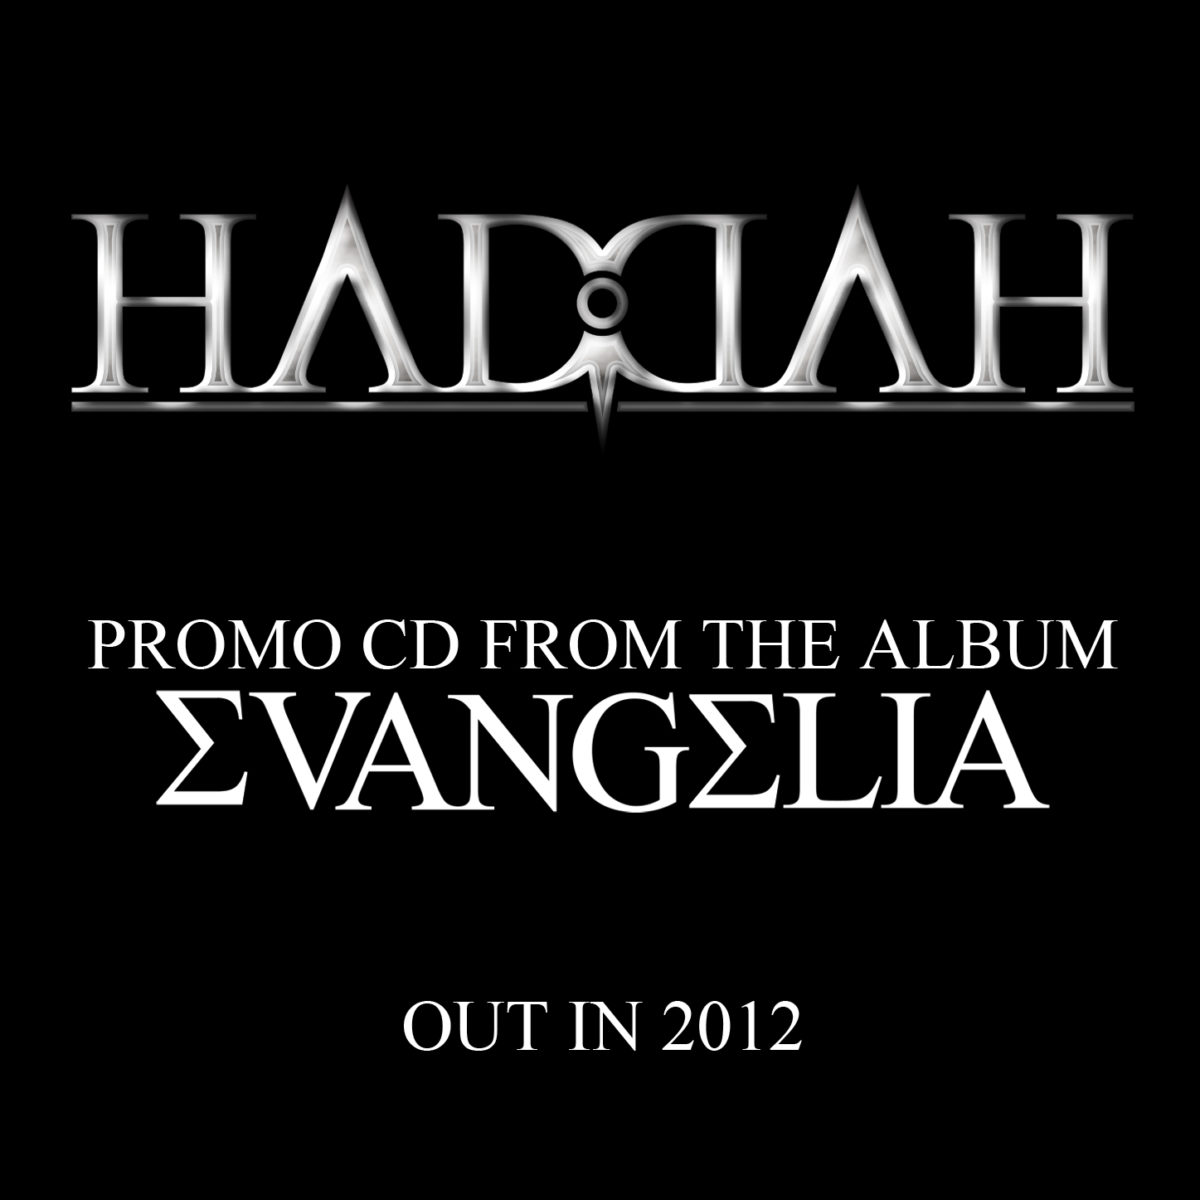 Evangelia Promo CD (full album)